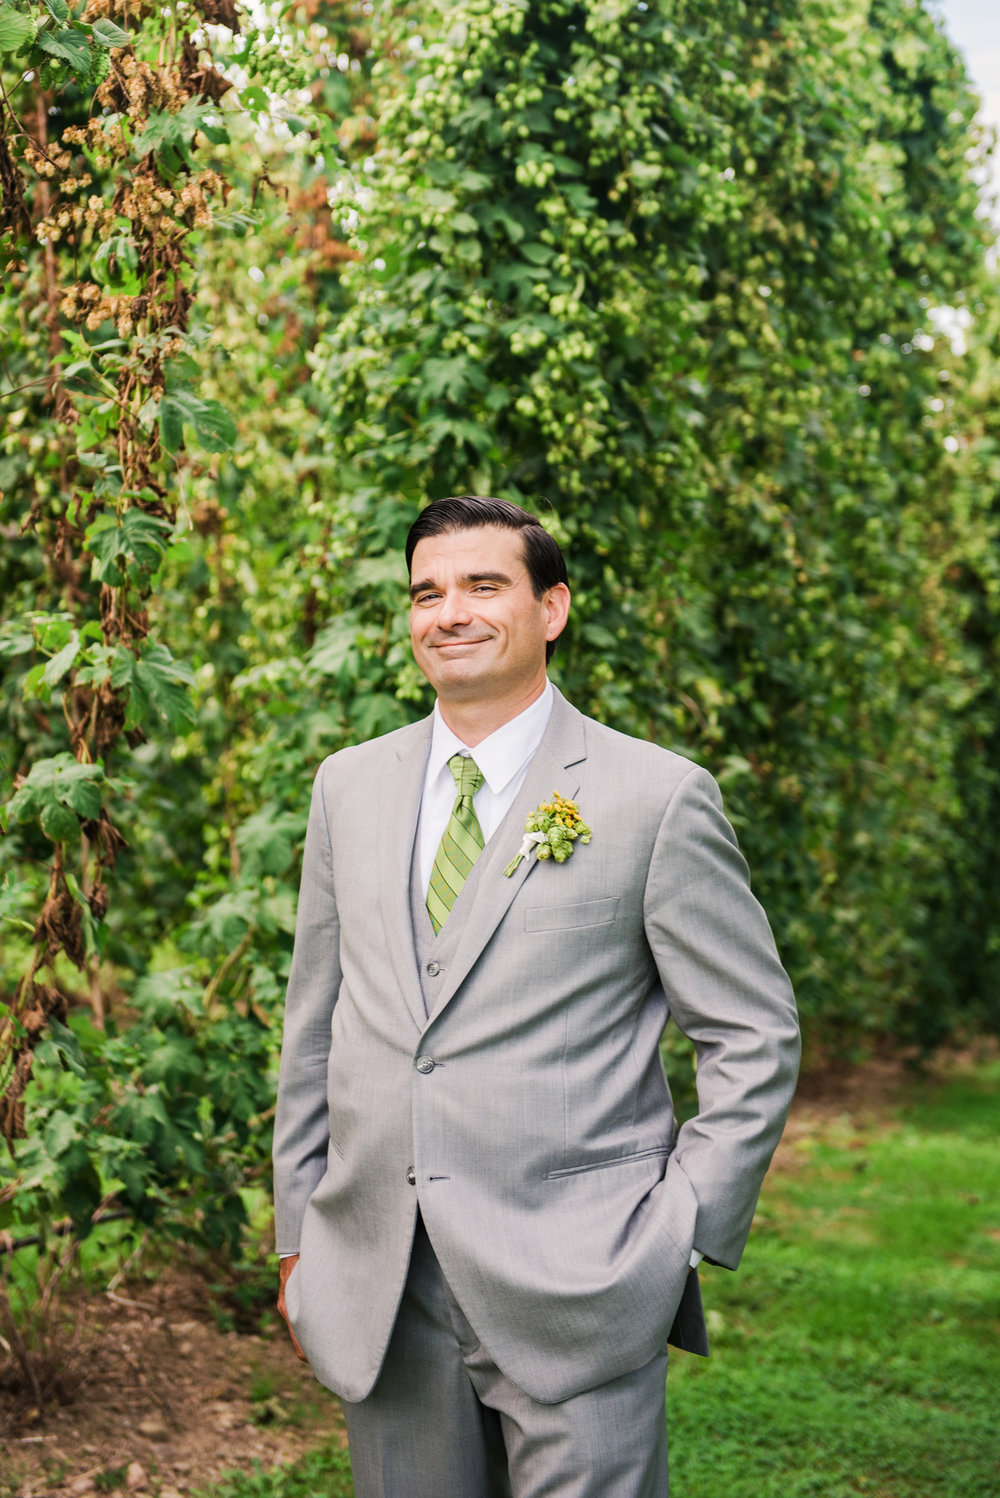 Climbing_Bines_Finger_Lakes_Wedding_JILL_STUDIO_Rochester_NY_Photographer_170108.jpg